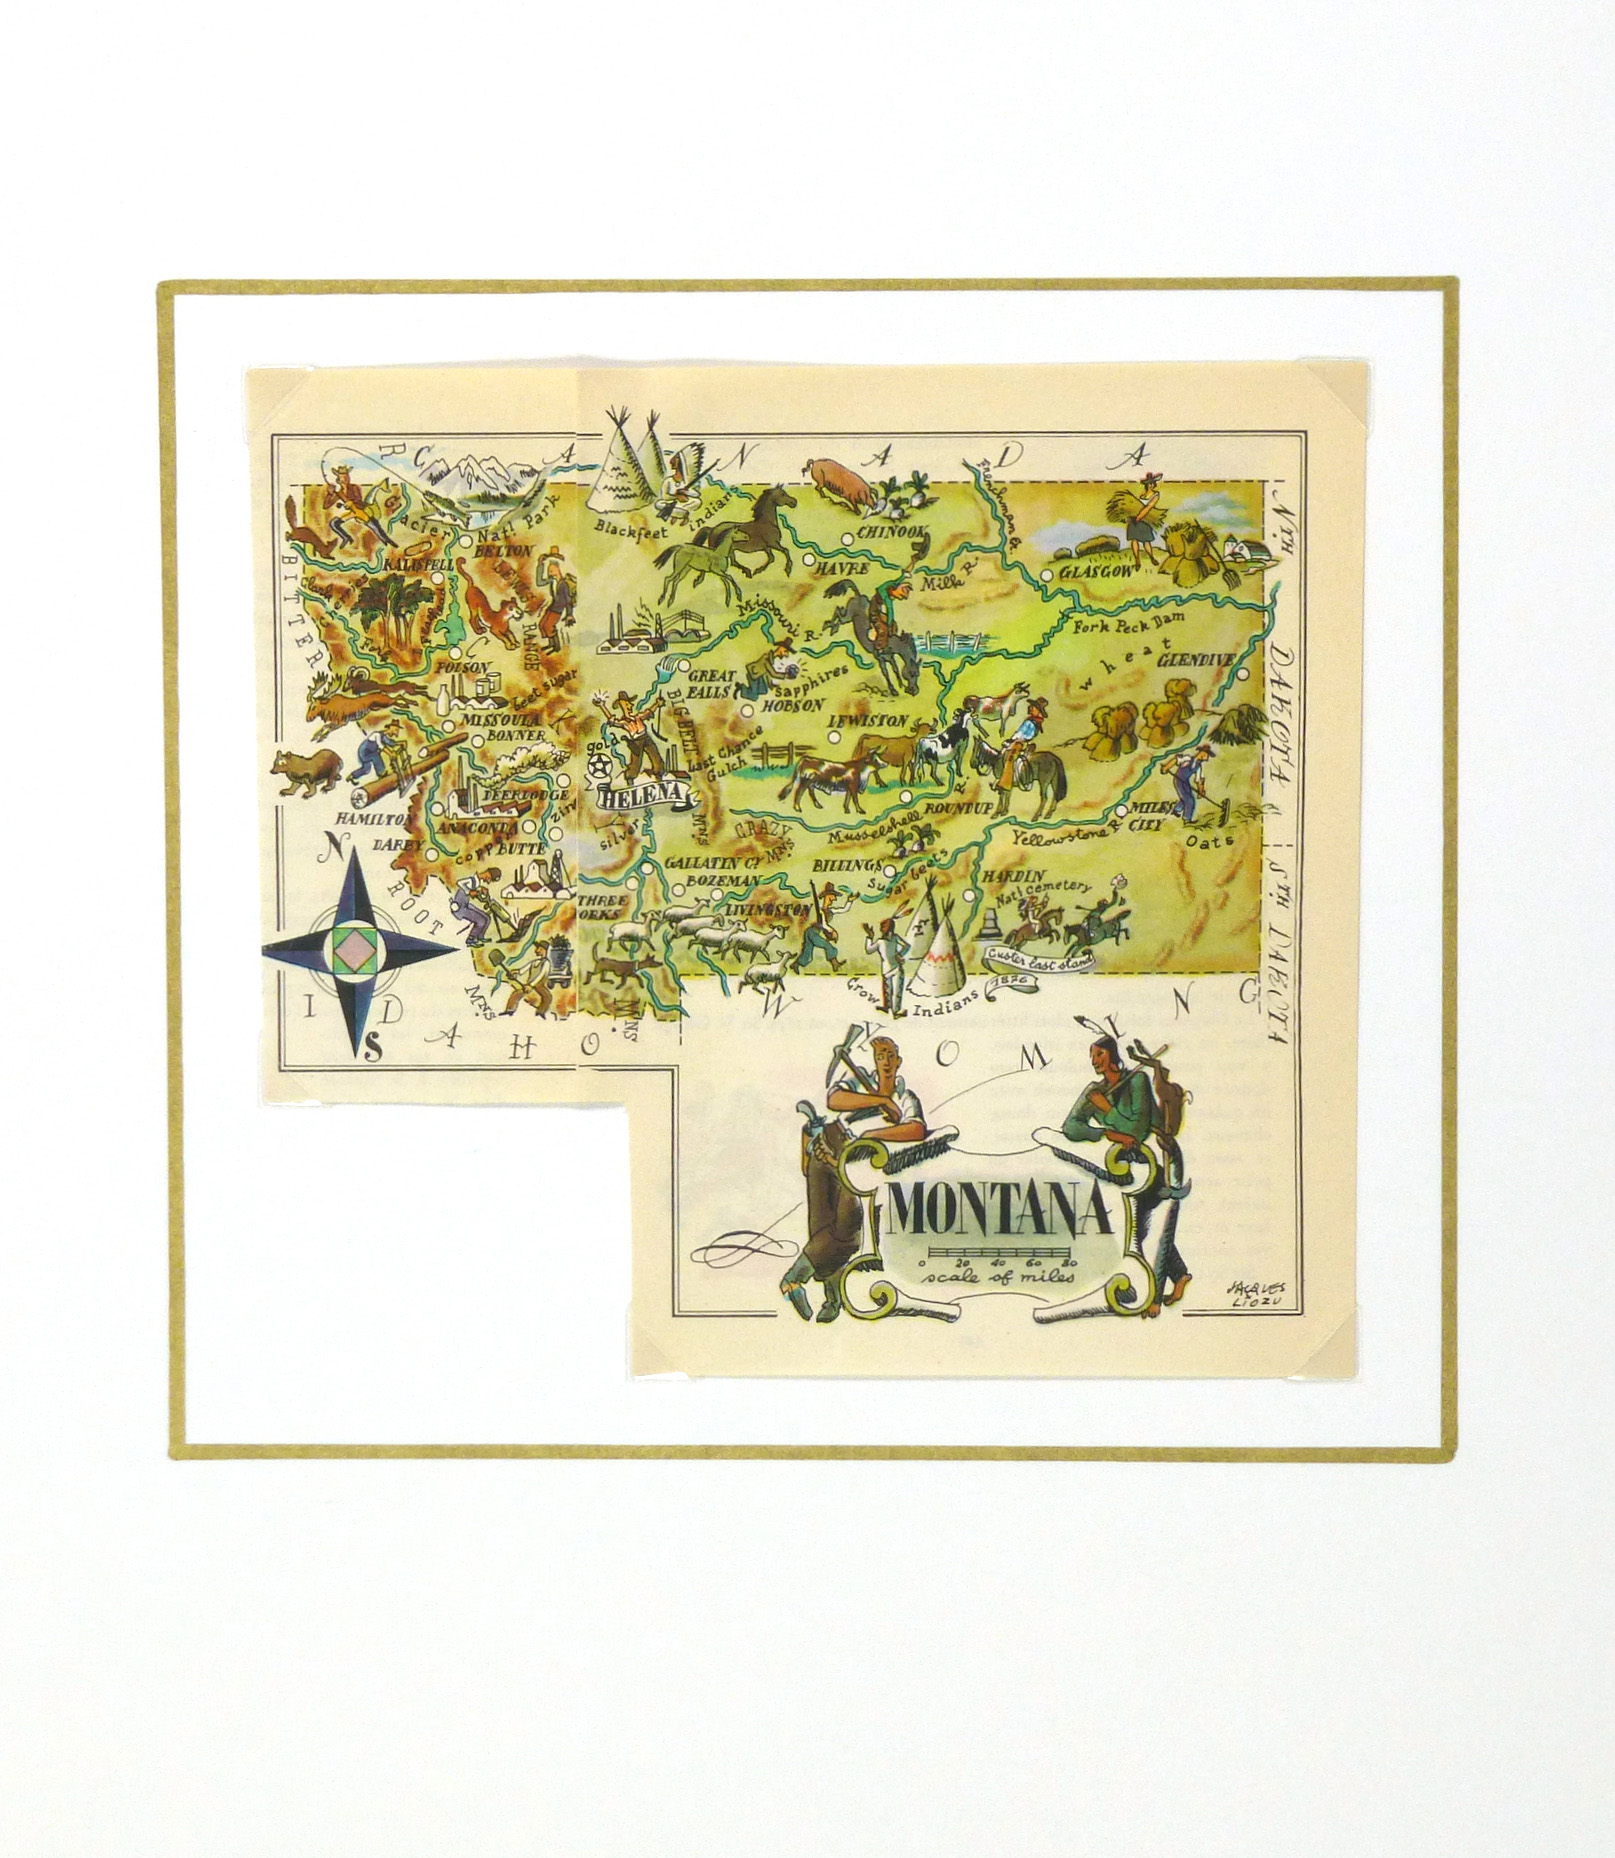 Montana Pictorial Map, 1946-matted-6272K